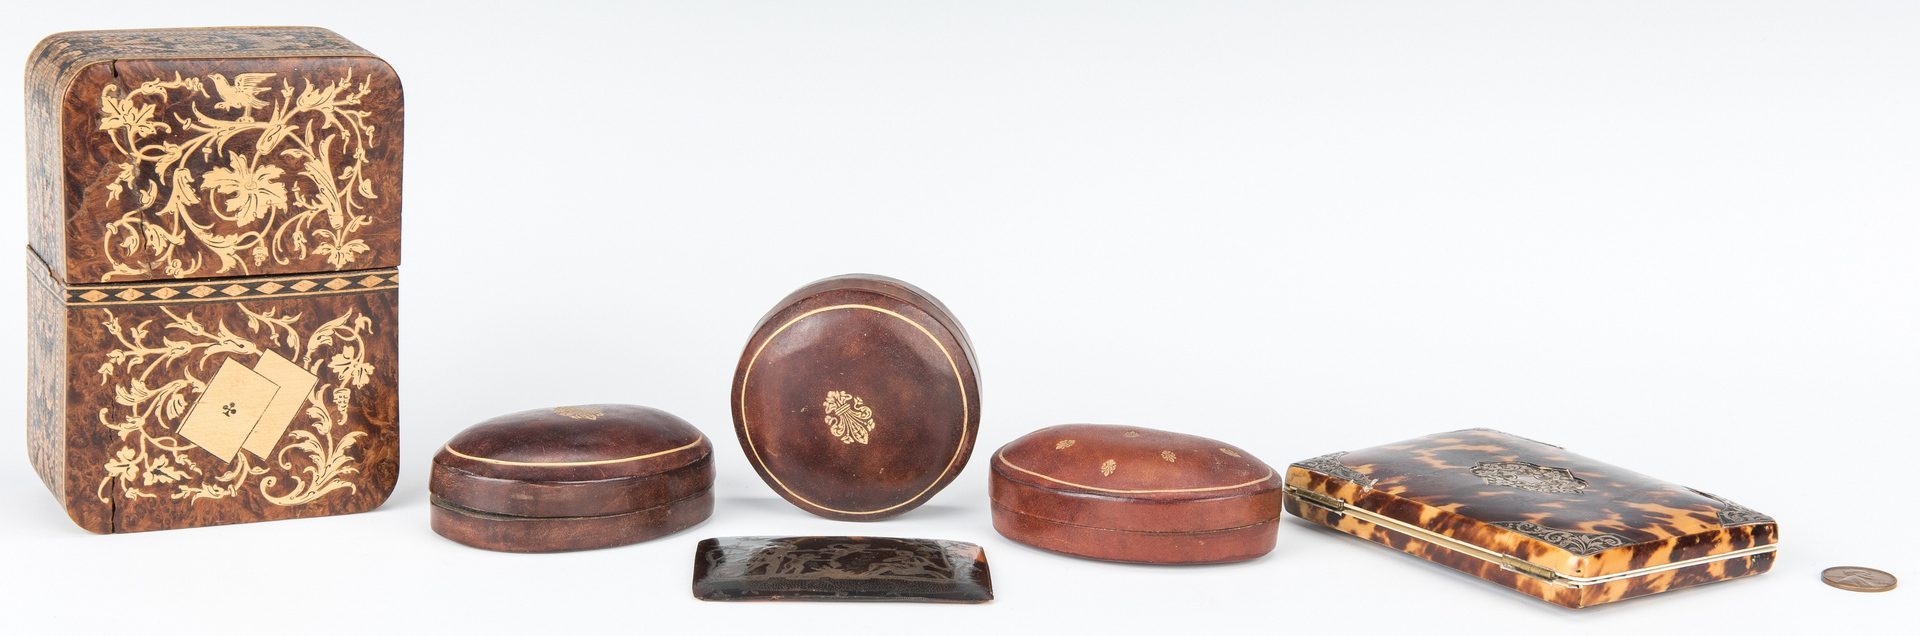 Lot 76:  5 Decorative Boxes and 1 Plaque